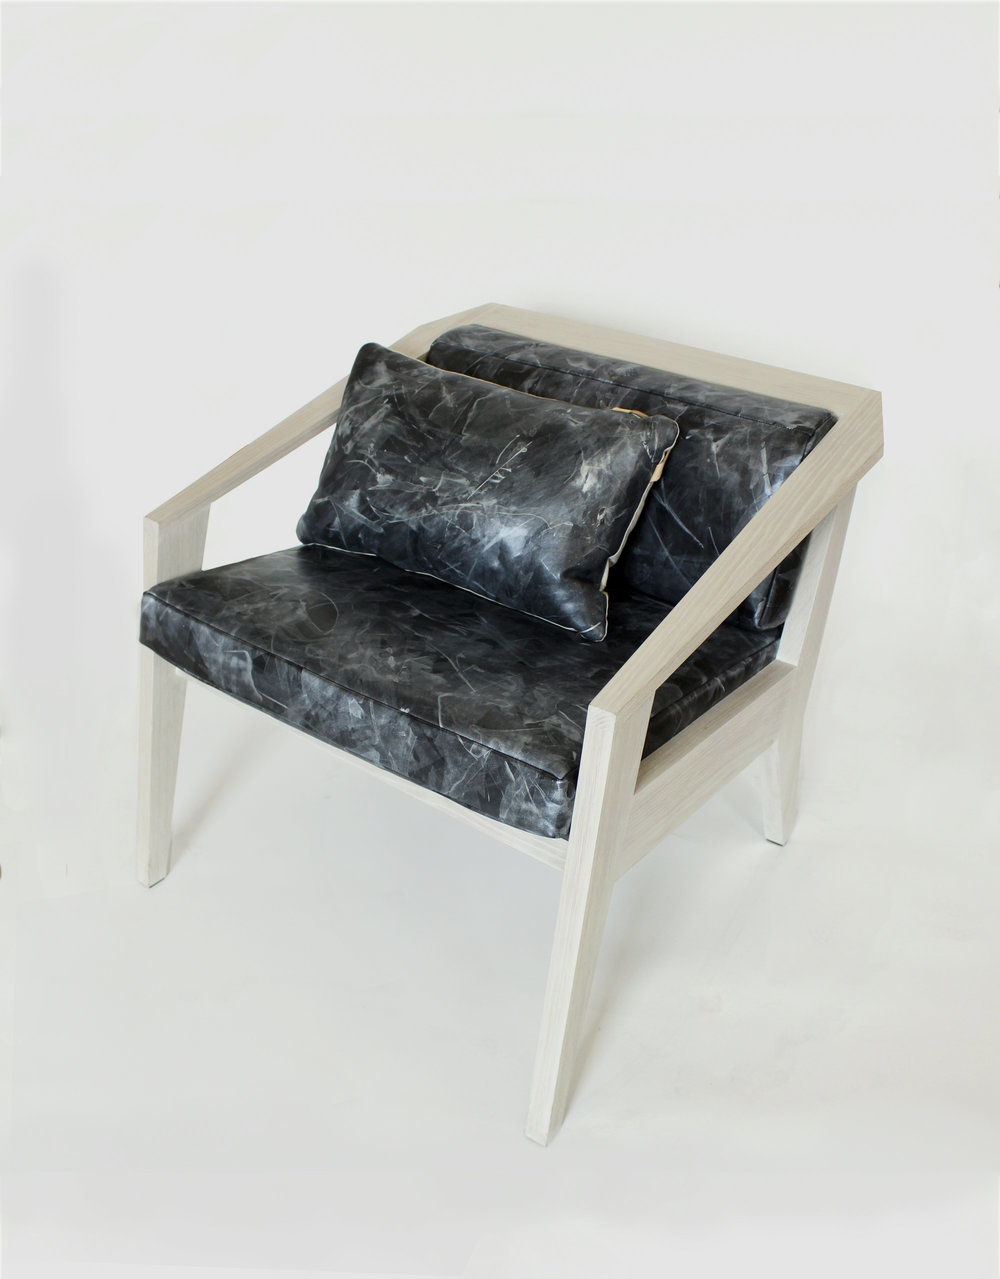 AVO-Asher-Collab-chair-2.jpg